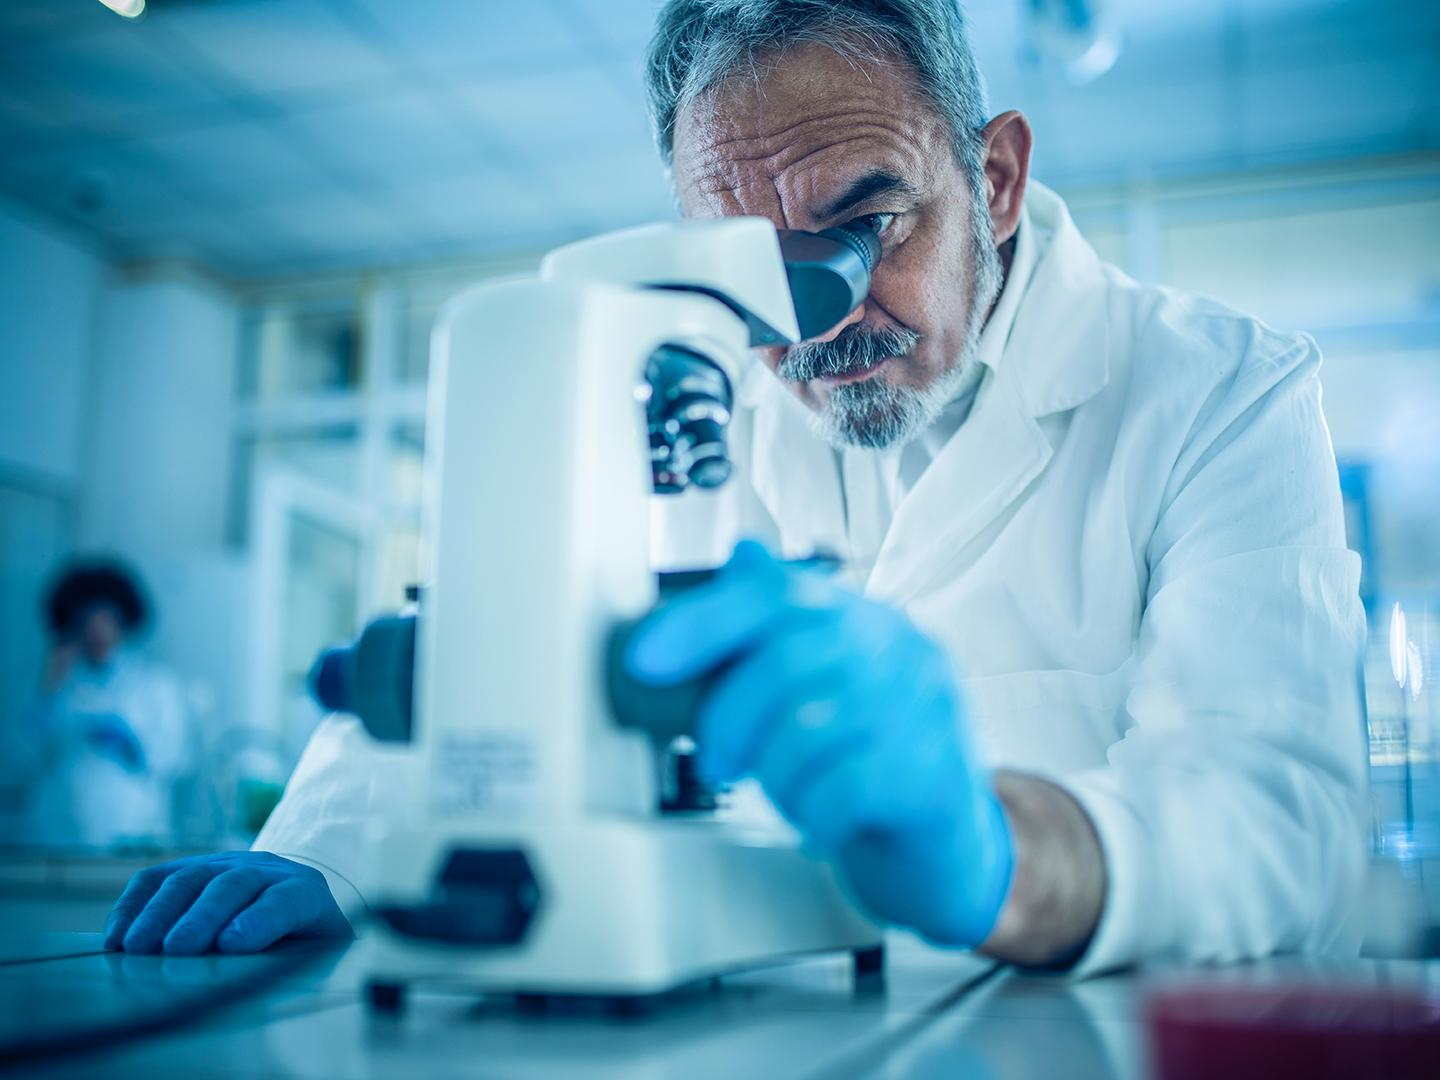 We seek innovative projects that promote the development of novel technologies and/or therapies to advance the field of bleeding disorders research.